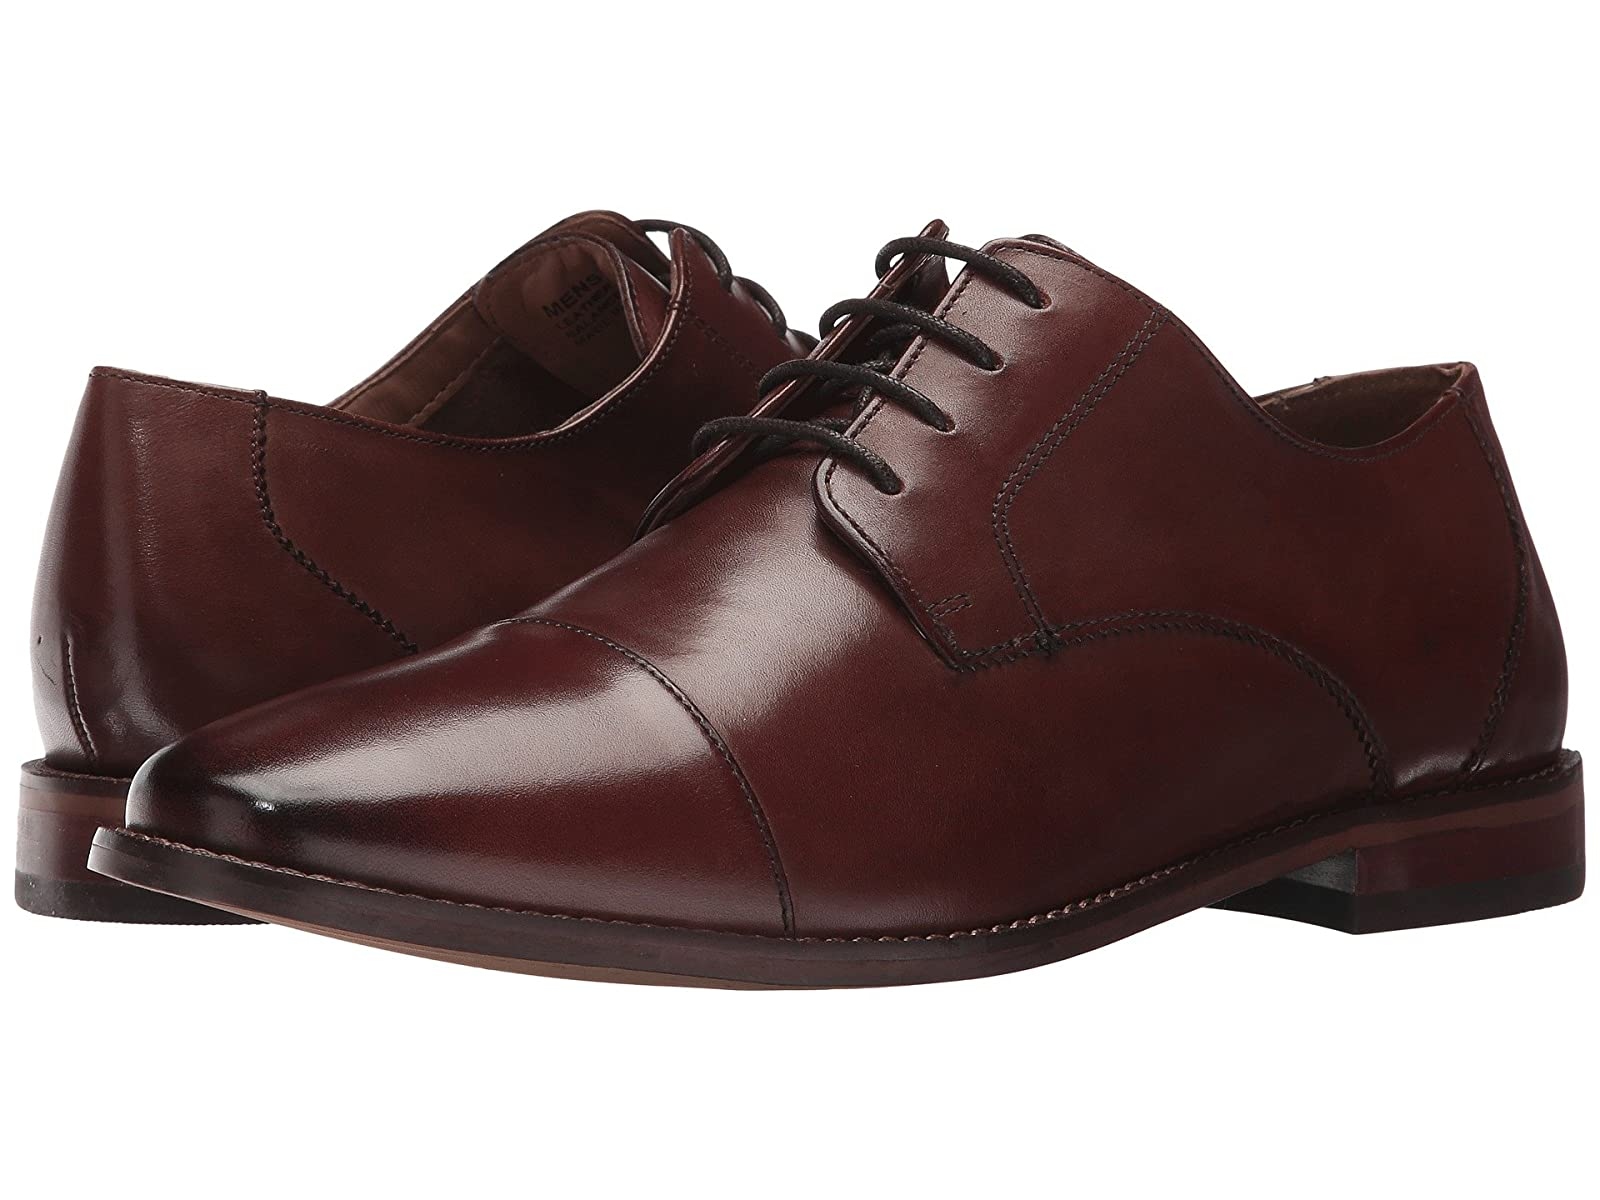 Florsheim Montinaro Cap Toe OxfordCheap and distinctive eye-catching shoes